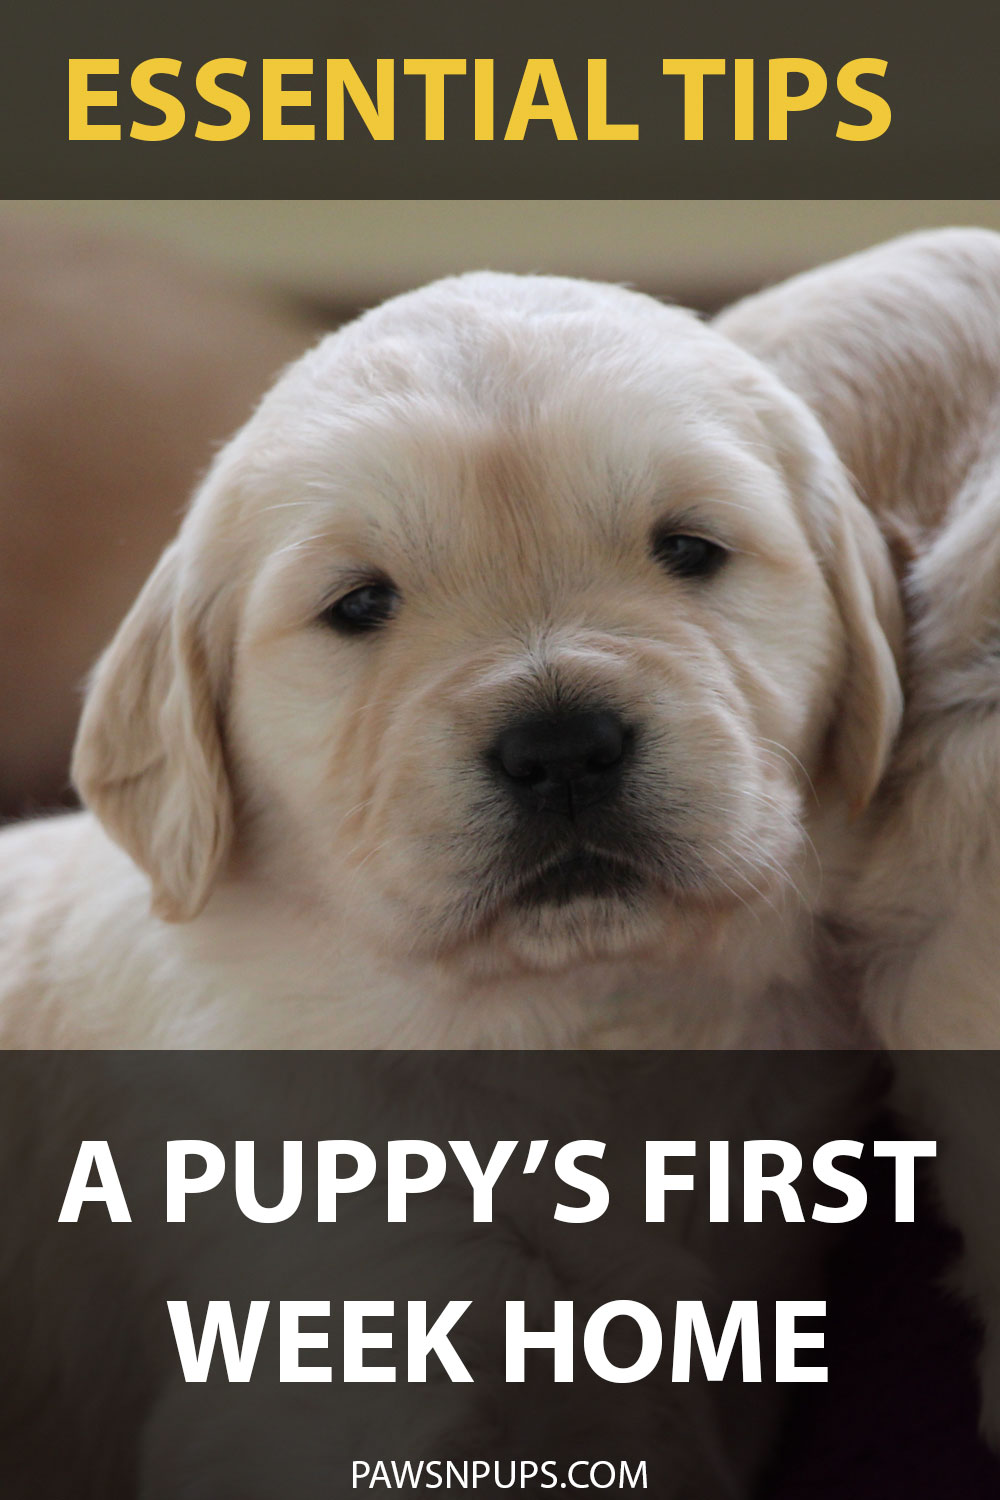 Essential Tips: A Puppy's First Week Home - Golden Retriever puppy next to his sibling. Staring back at the camera